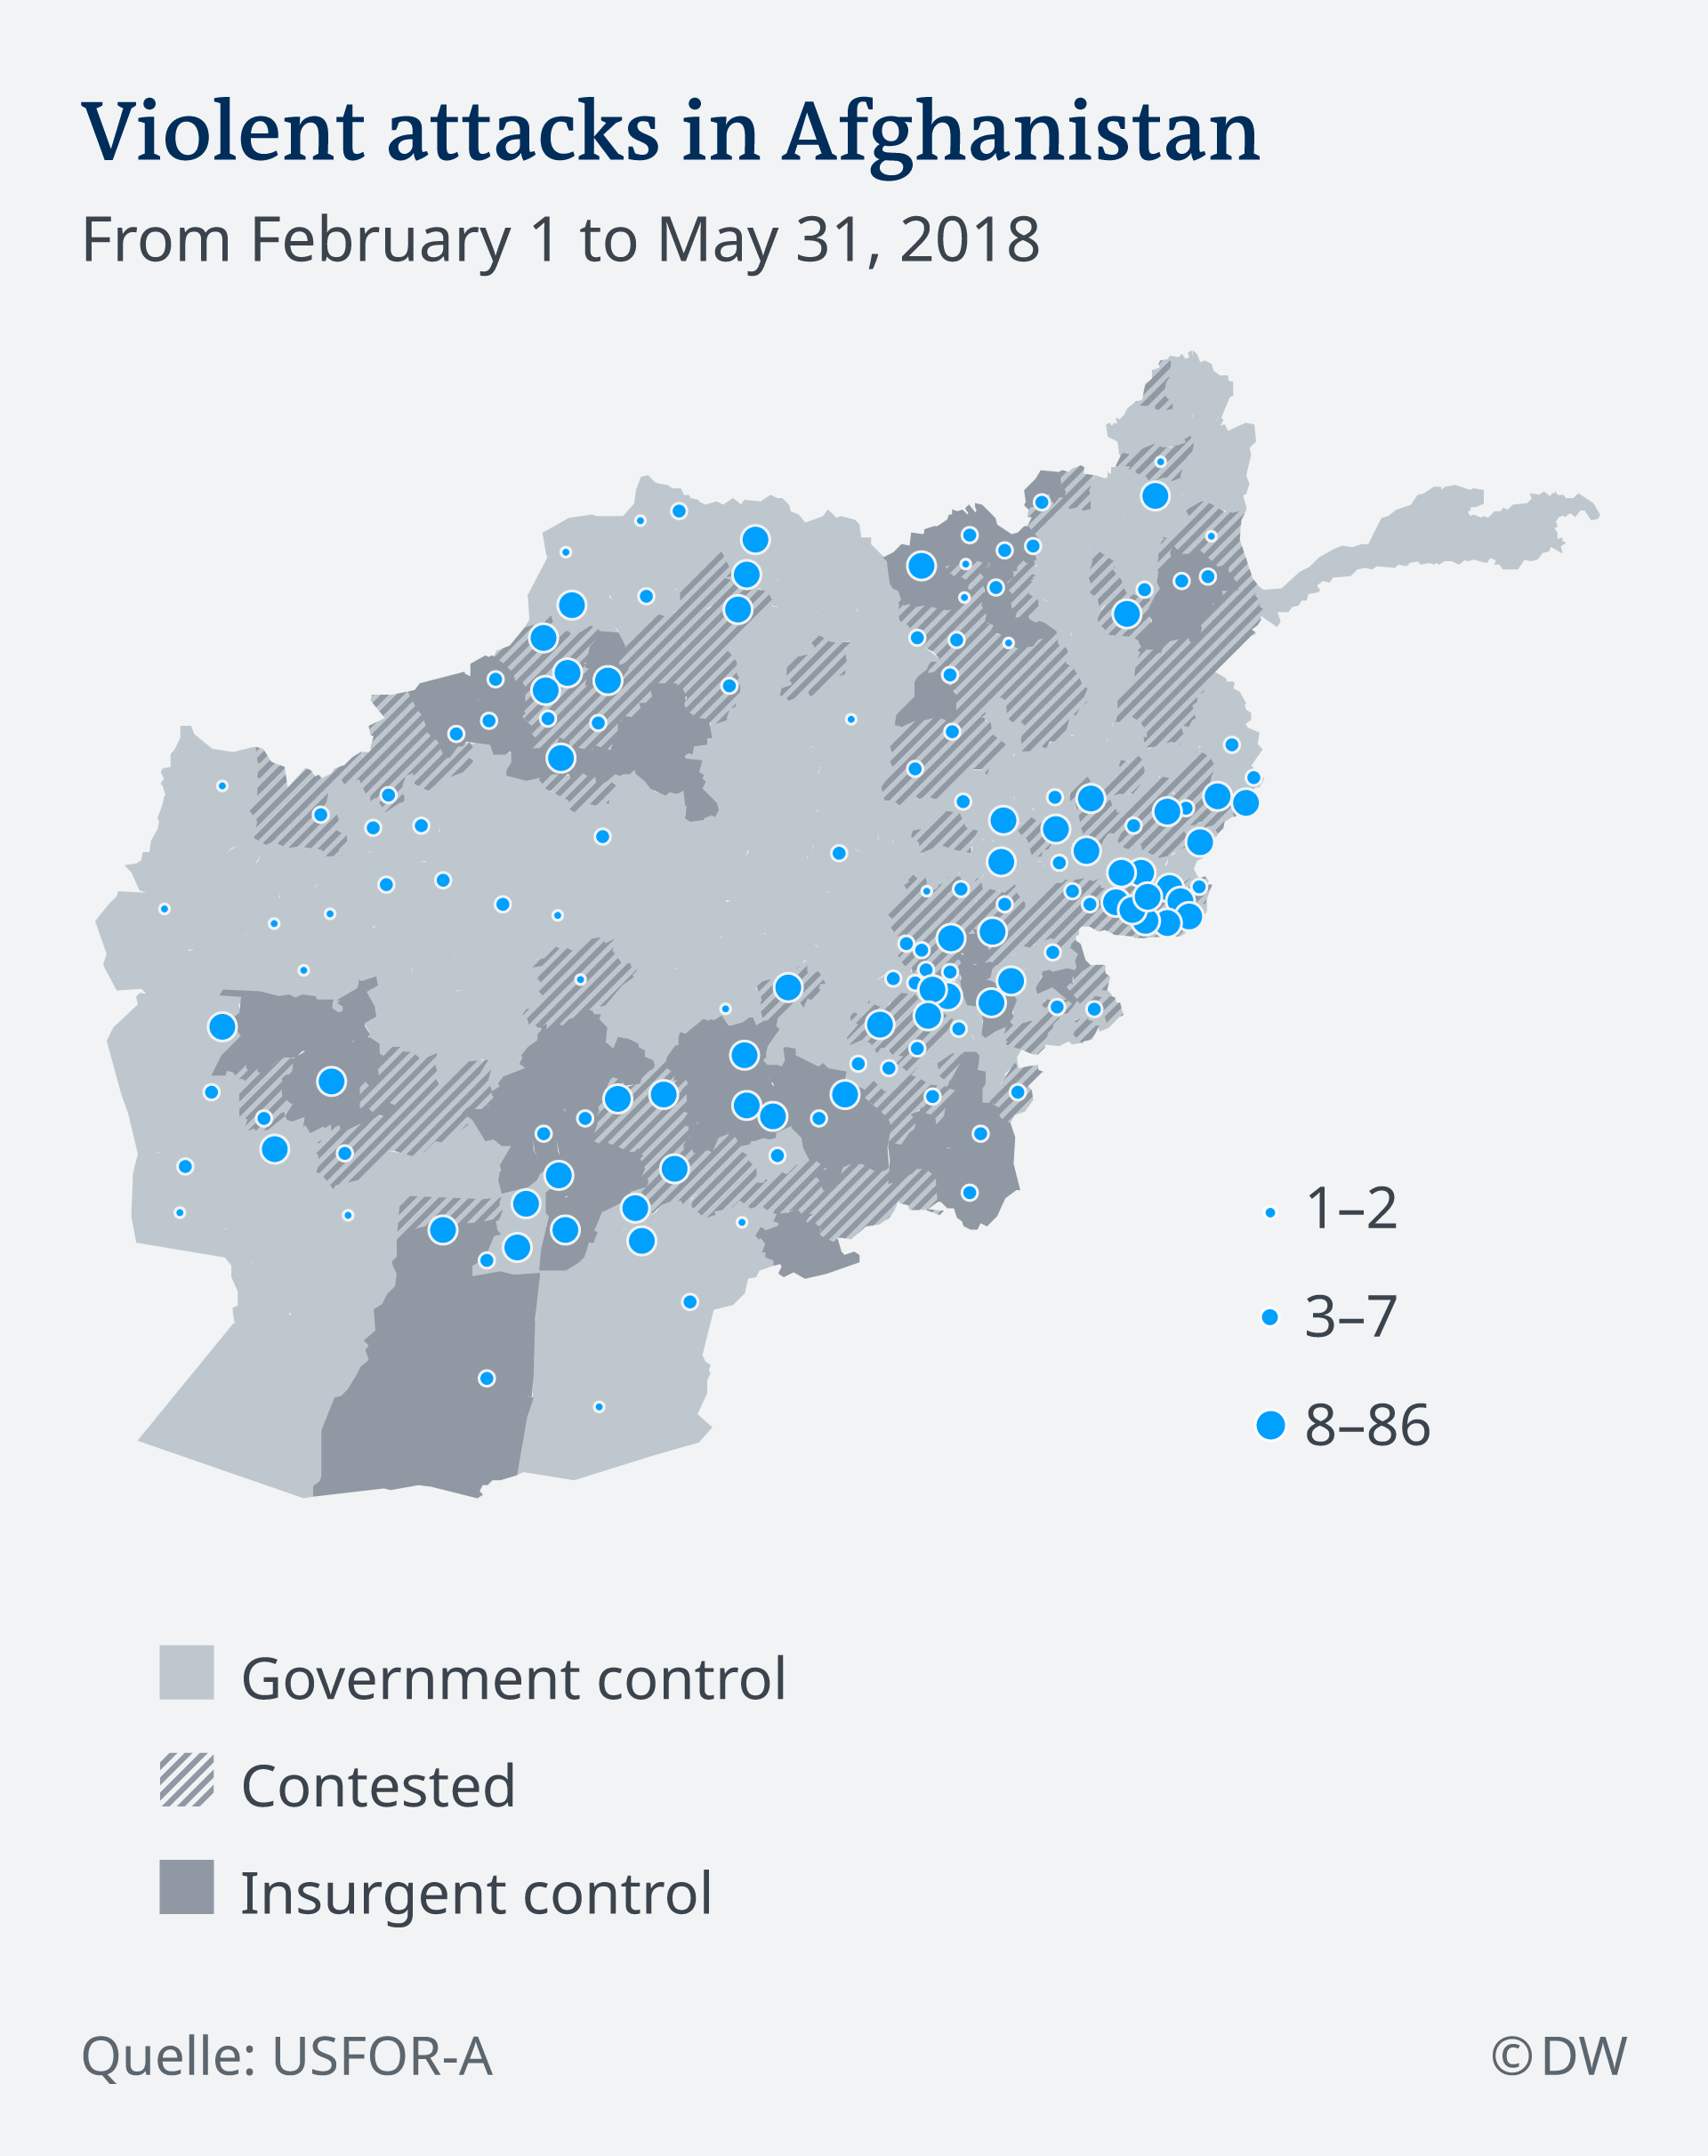 Infographic showing the number of violent attacks in Afghanistan from February 1 to May 31 in 2018